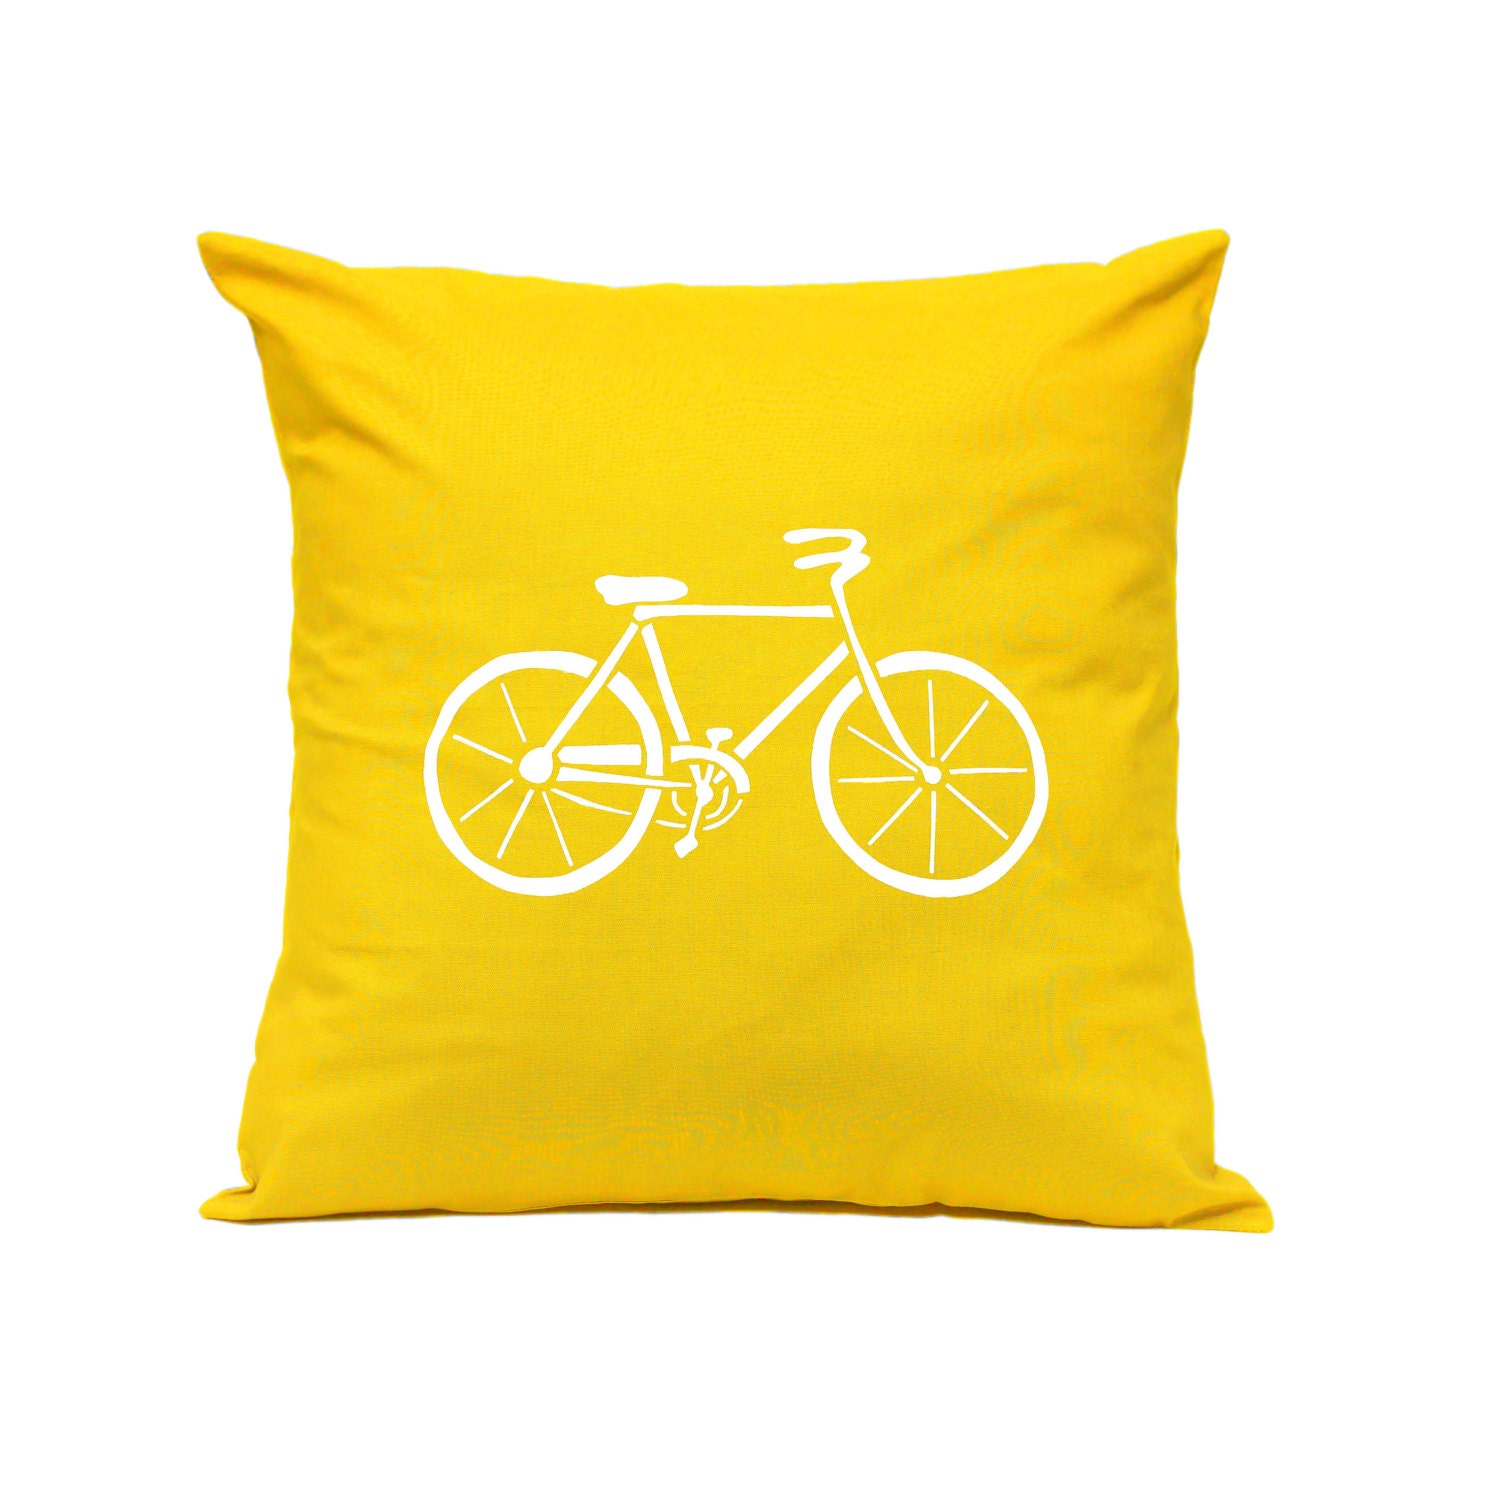 Throw Pillow Bicycle in YELLOW Decorative Cushion